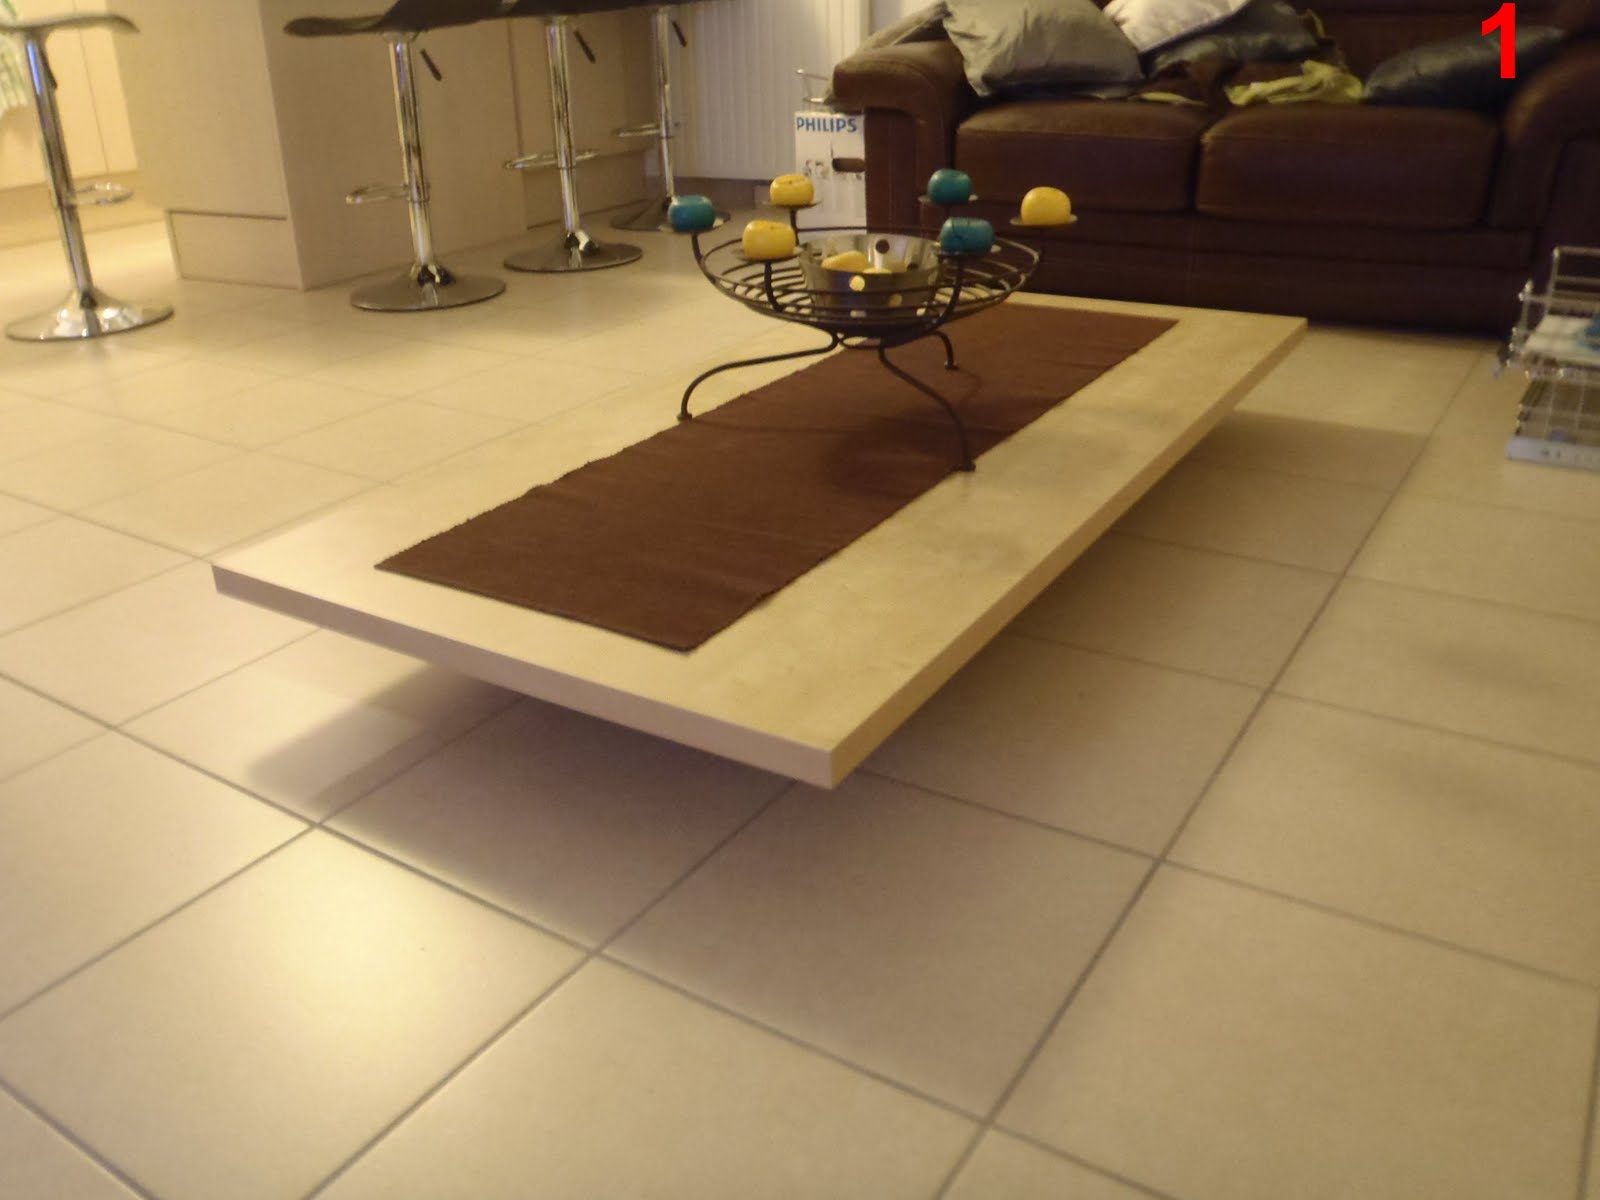 Modern-Low-Coffee-Tables-made-the-table-stylish-enough-to-be-in-your-contemporary-home-office-or-business-establishment (Image 5 of 9)